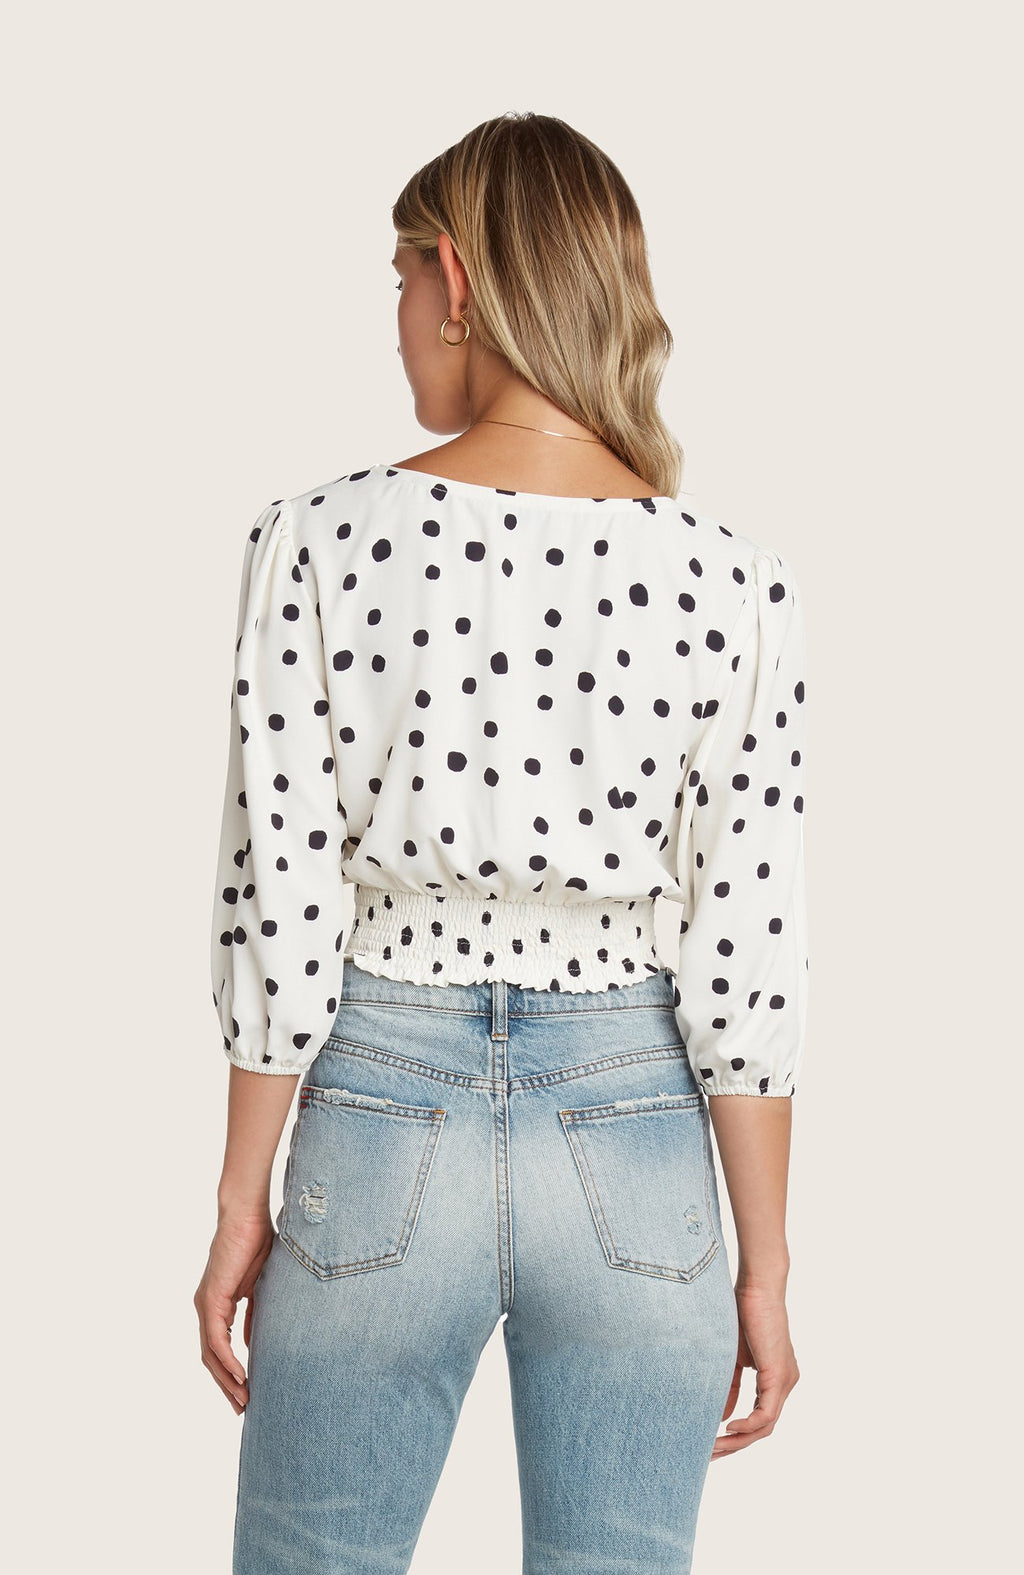 Willow-carla-cropped-polka-dot-wrap-top-black-white-vneck-puff-sleeve-smocked-back-slim-fit-matching-set-front-waist-tie